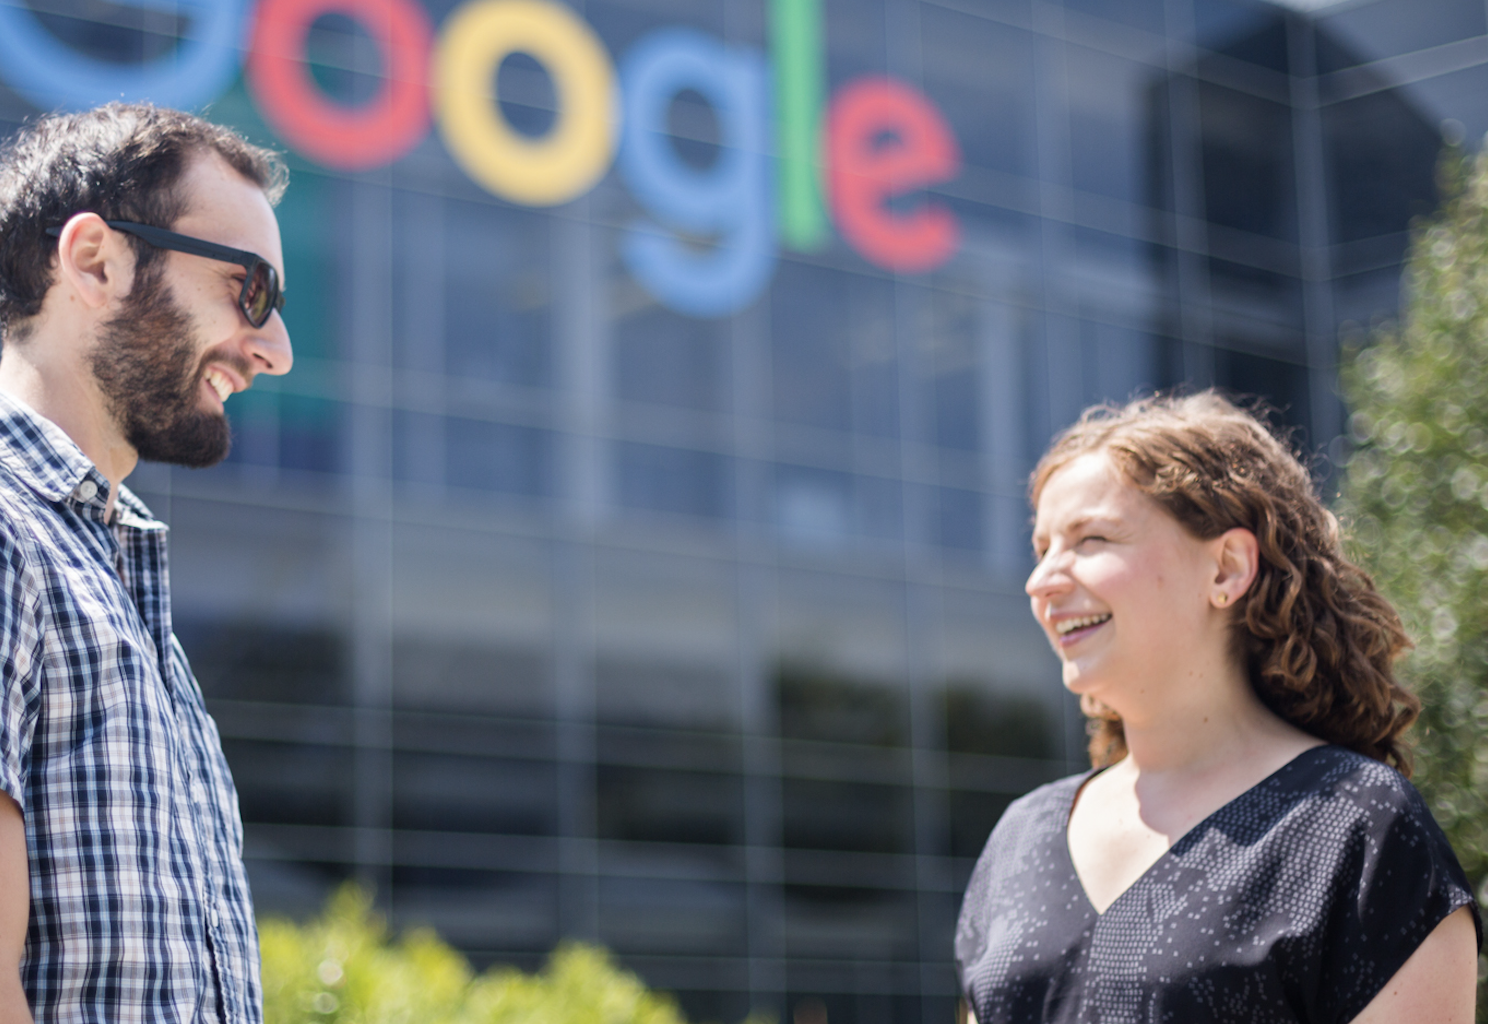 Google's Software Development Apprenticeship program is now open